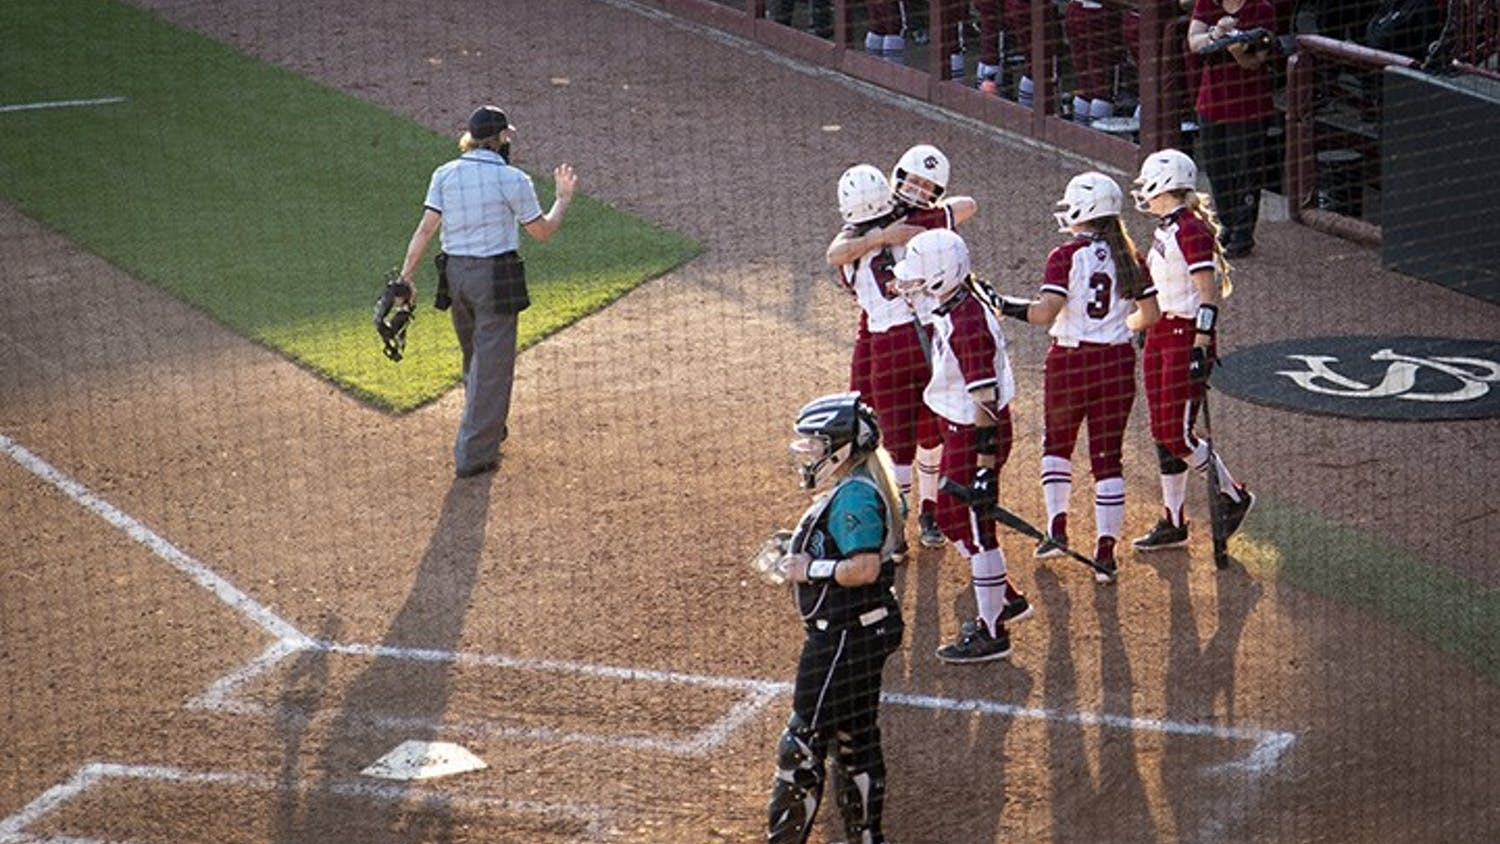 The Gamecocks celebrate homerun by junior catcher Jordan Fabian. Fabian's home run brings the score to 9-0 for the Gamecocks at the end of the second inning.